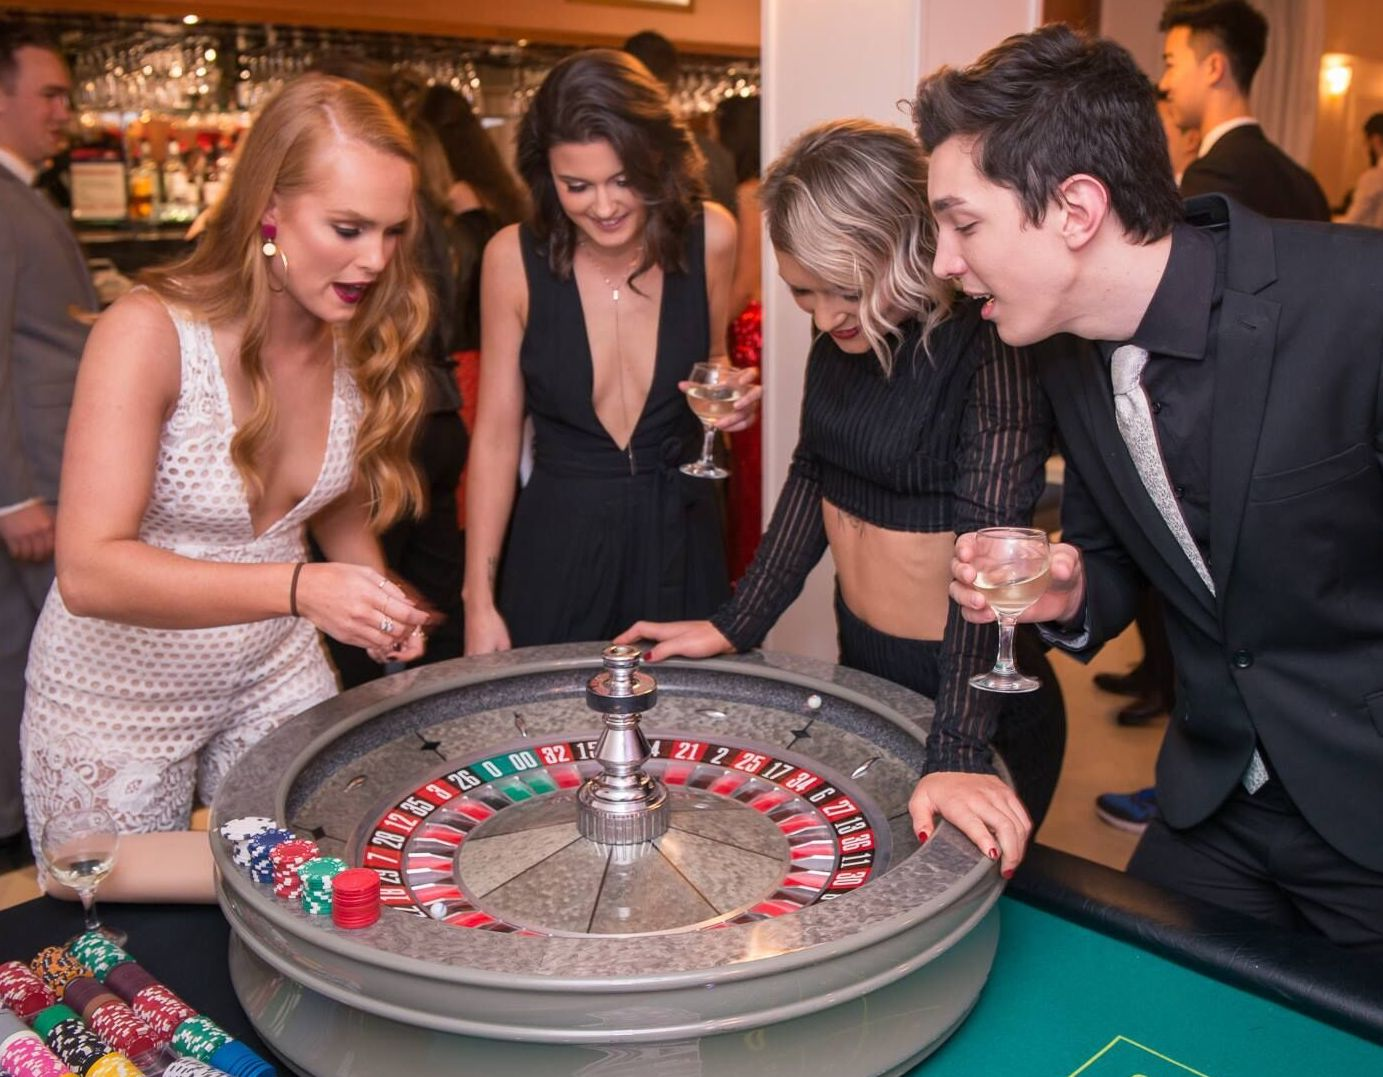 roulette table with players